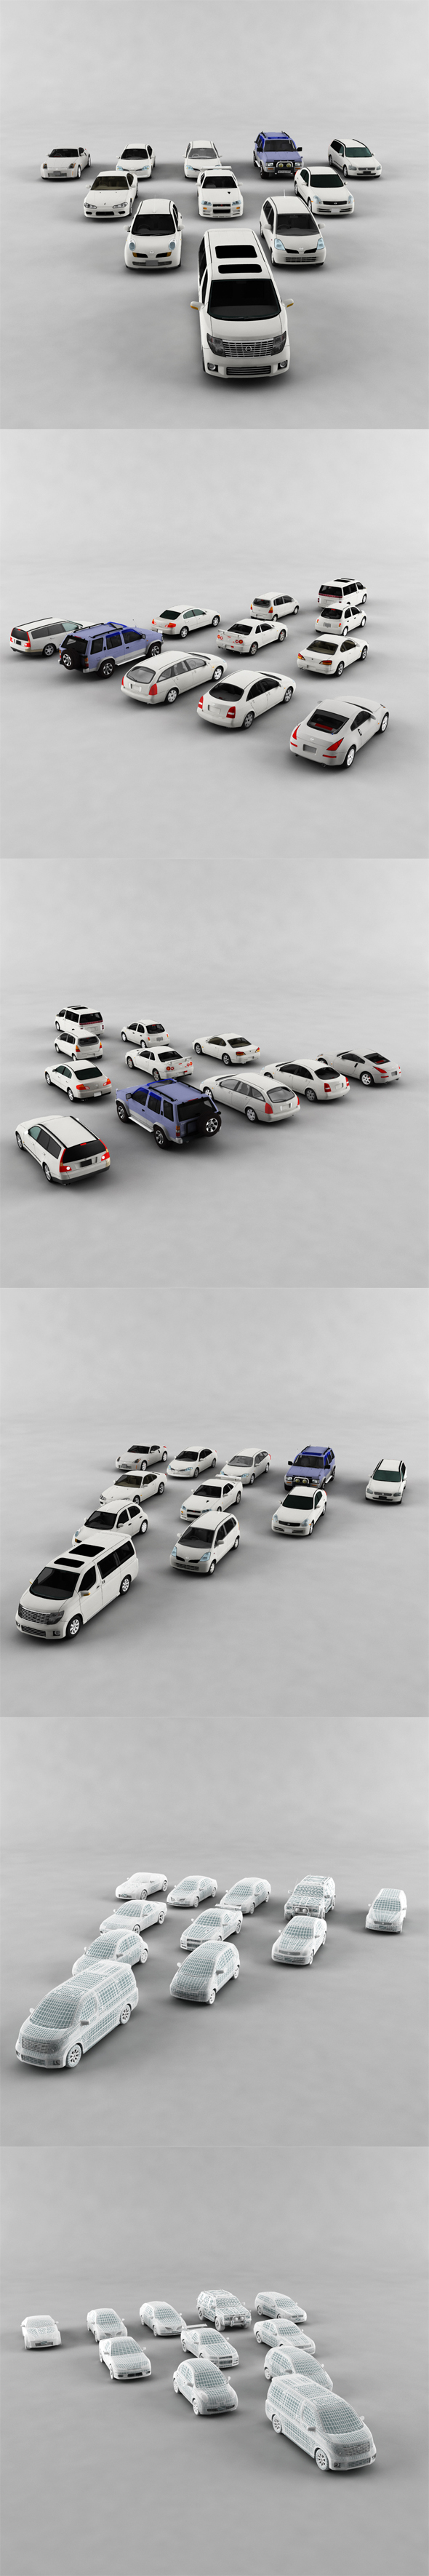 Complete Vehicle Pack 2 - 3DOcean Item for Sale